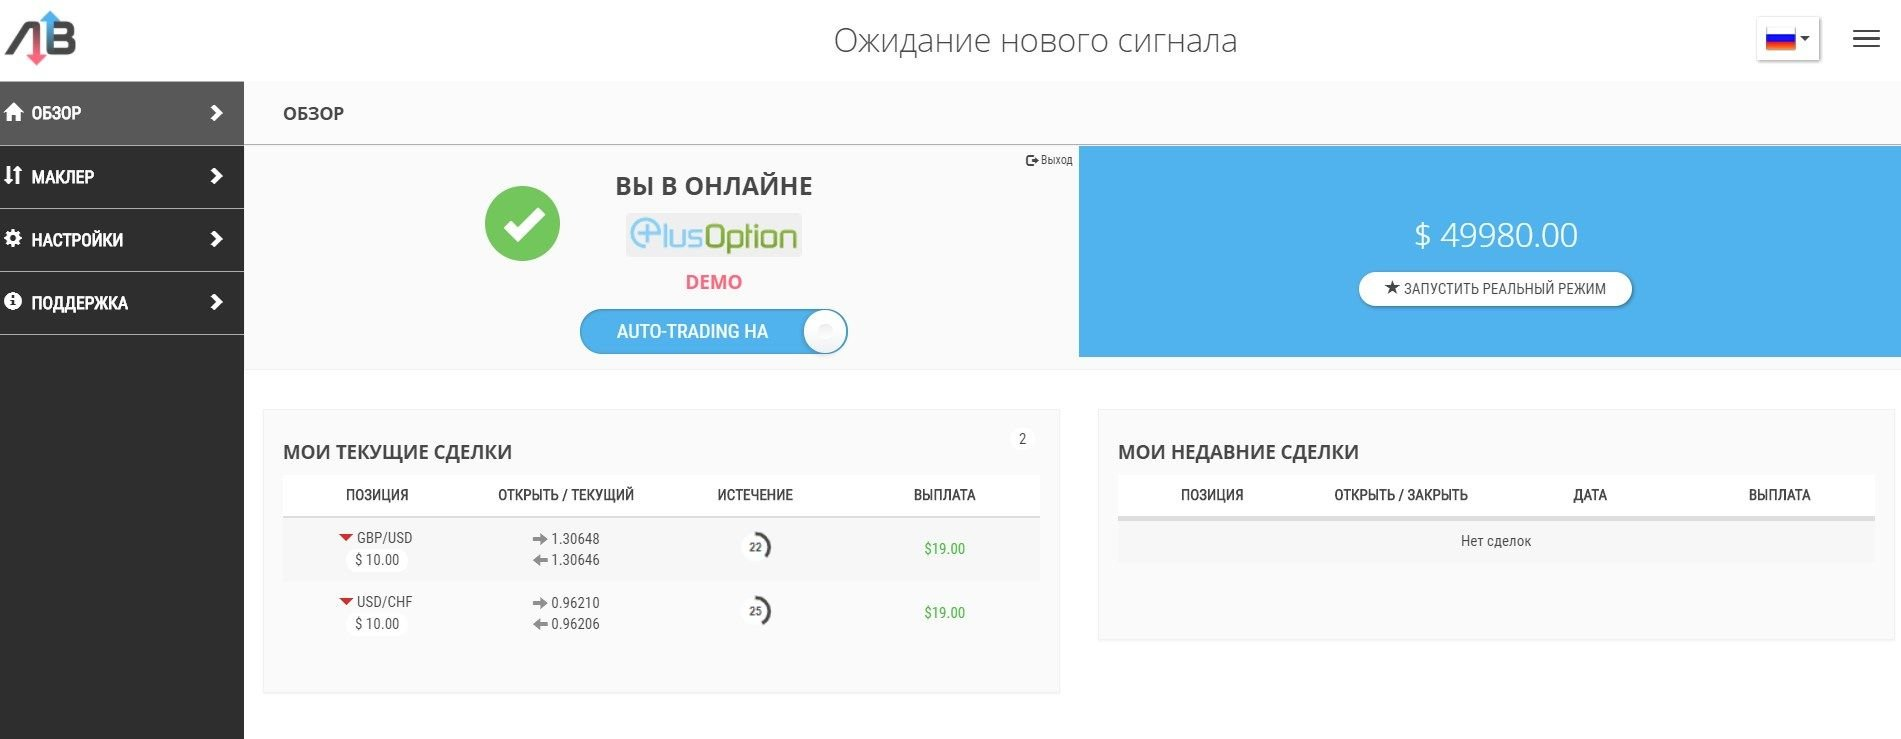 Запустите торговлю на демо-режиме бинарного робота Automated Binary